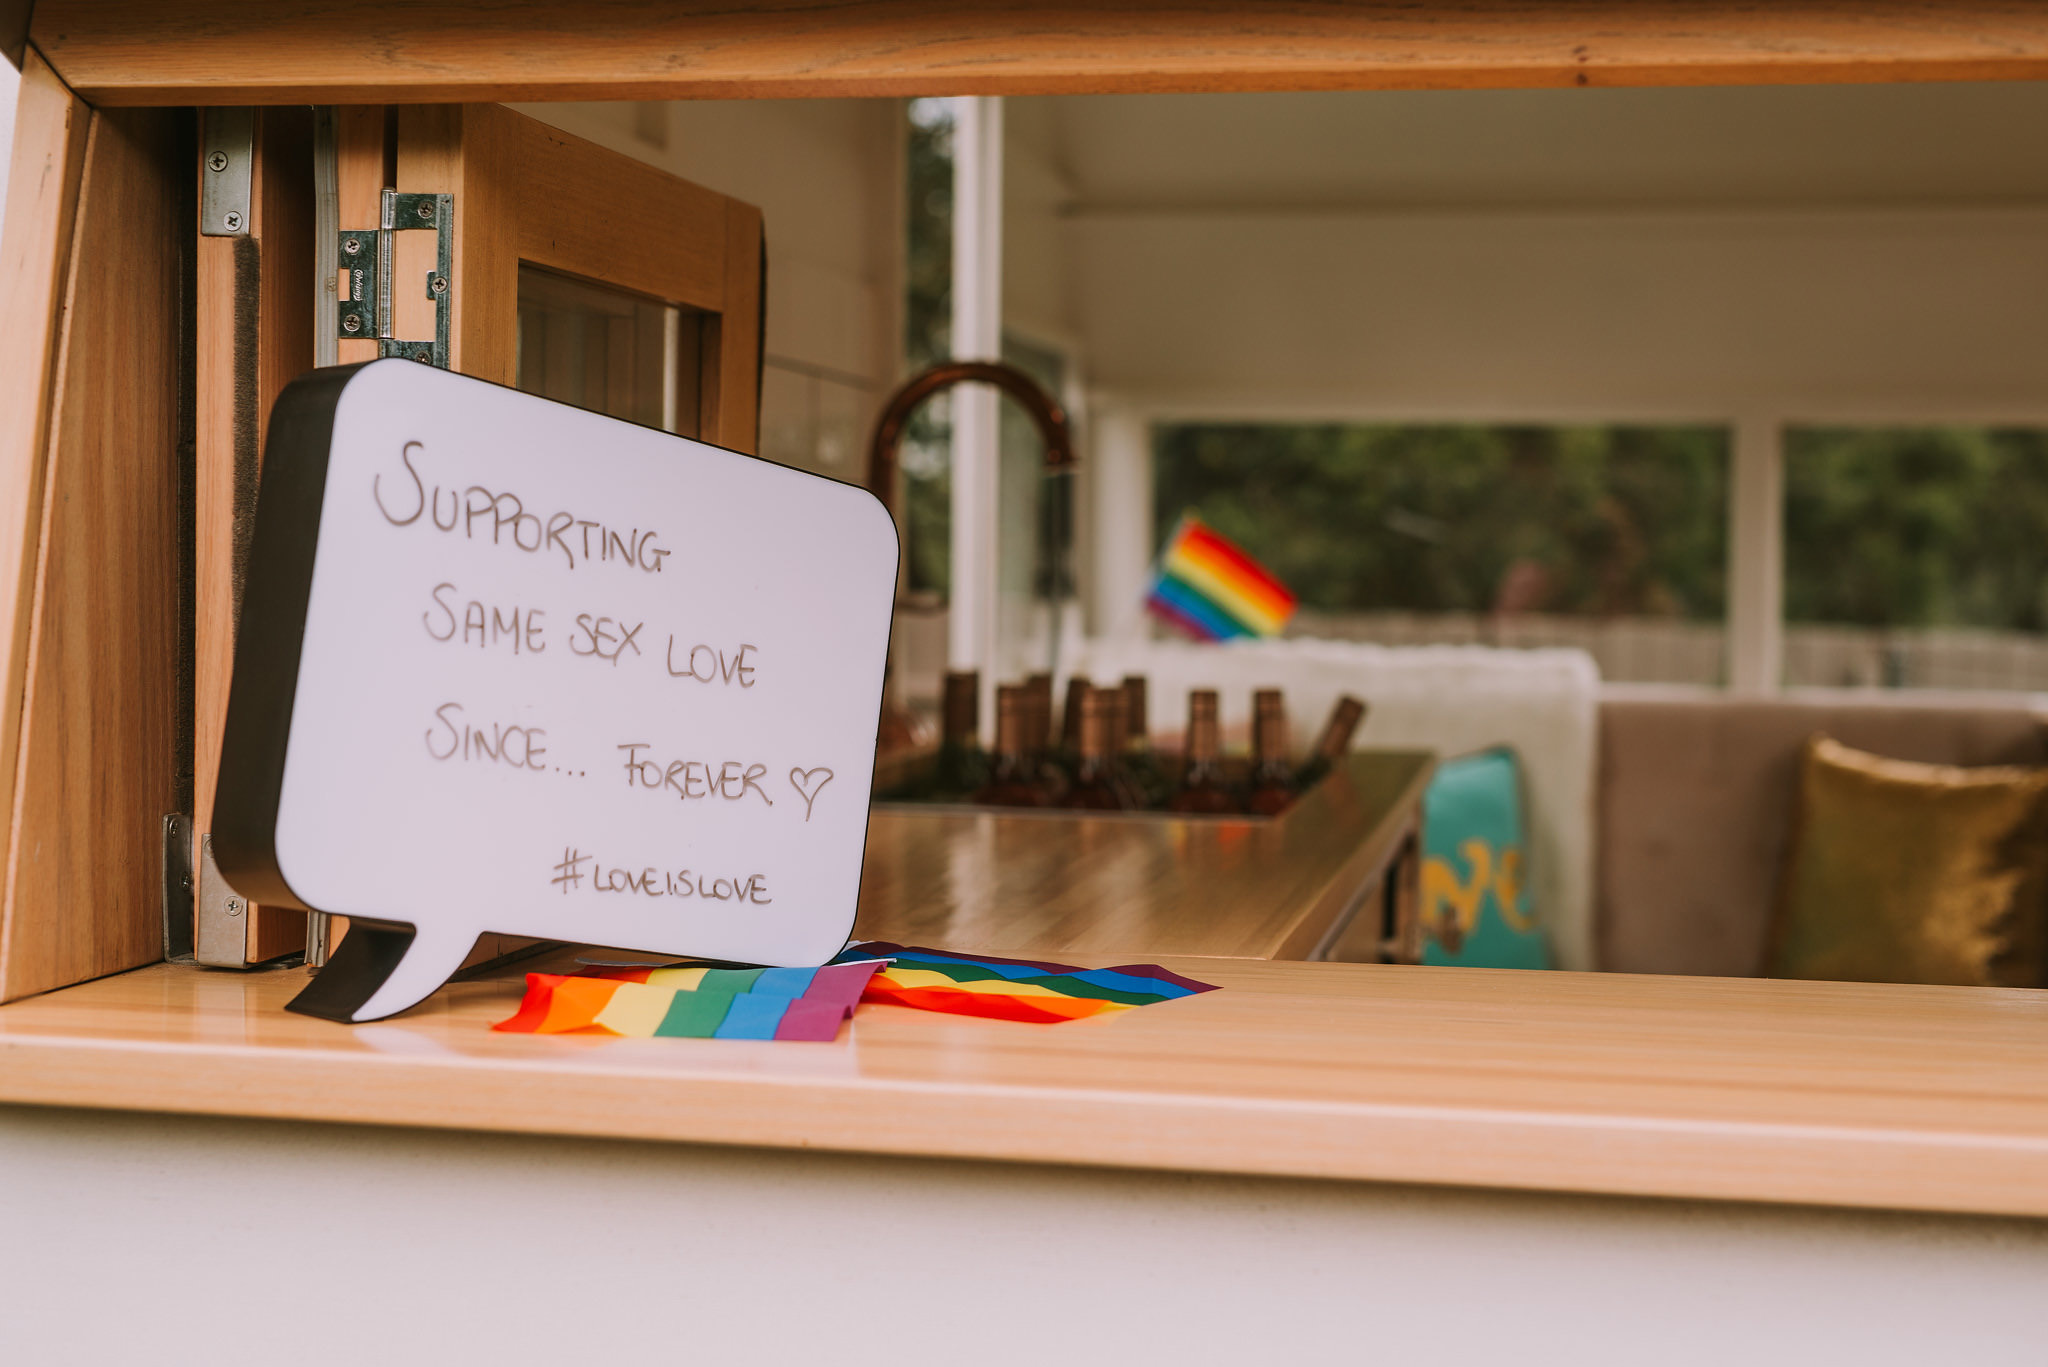 Signage in support of Marriage Equality.Photo by Angus Porter Photography